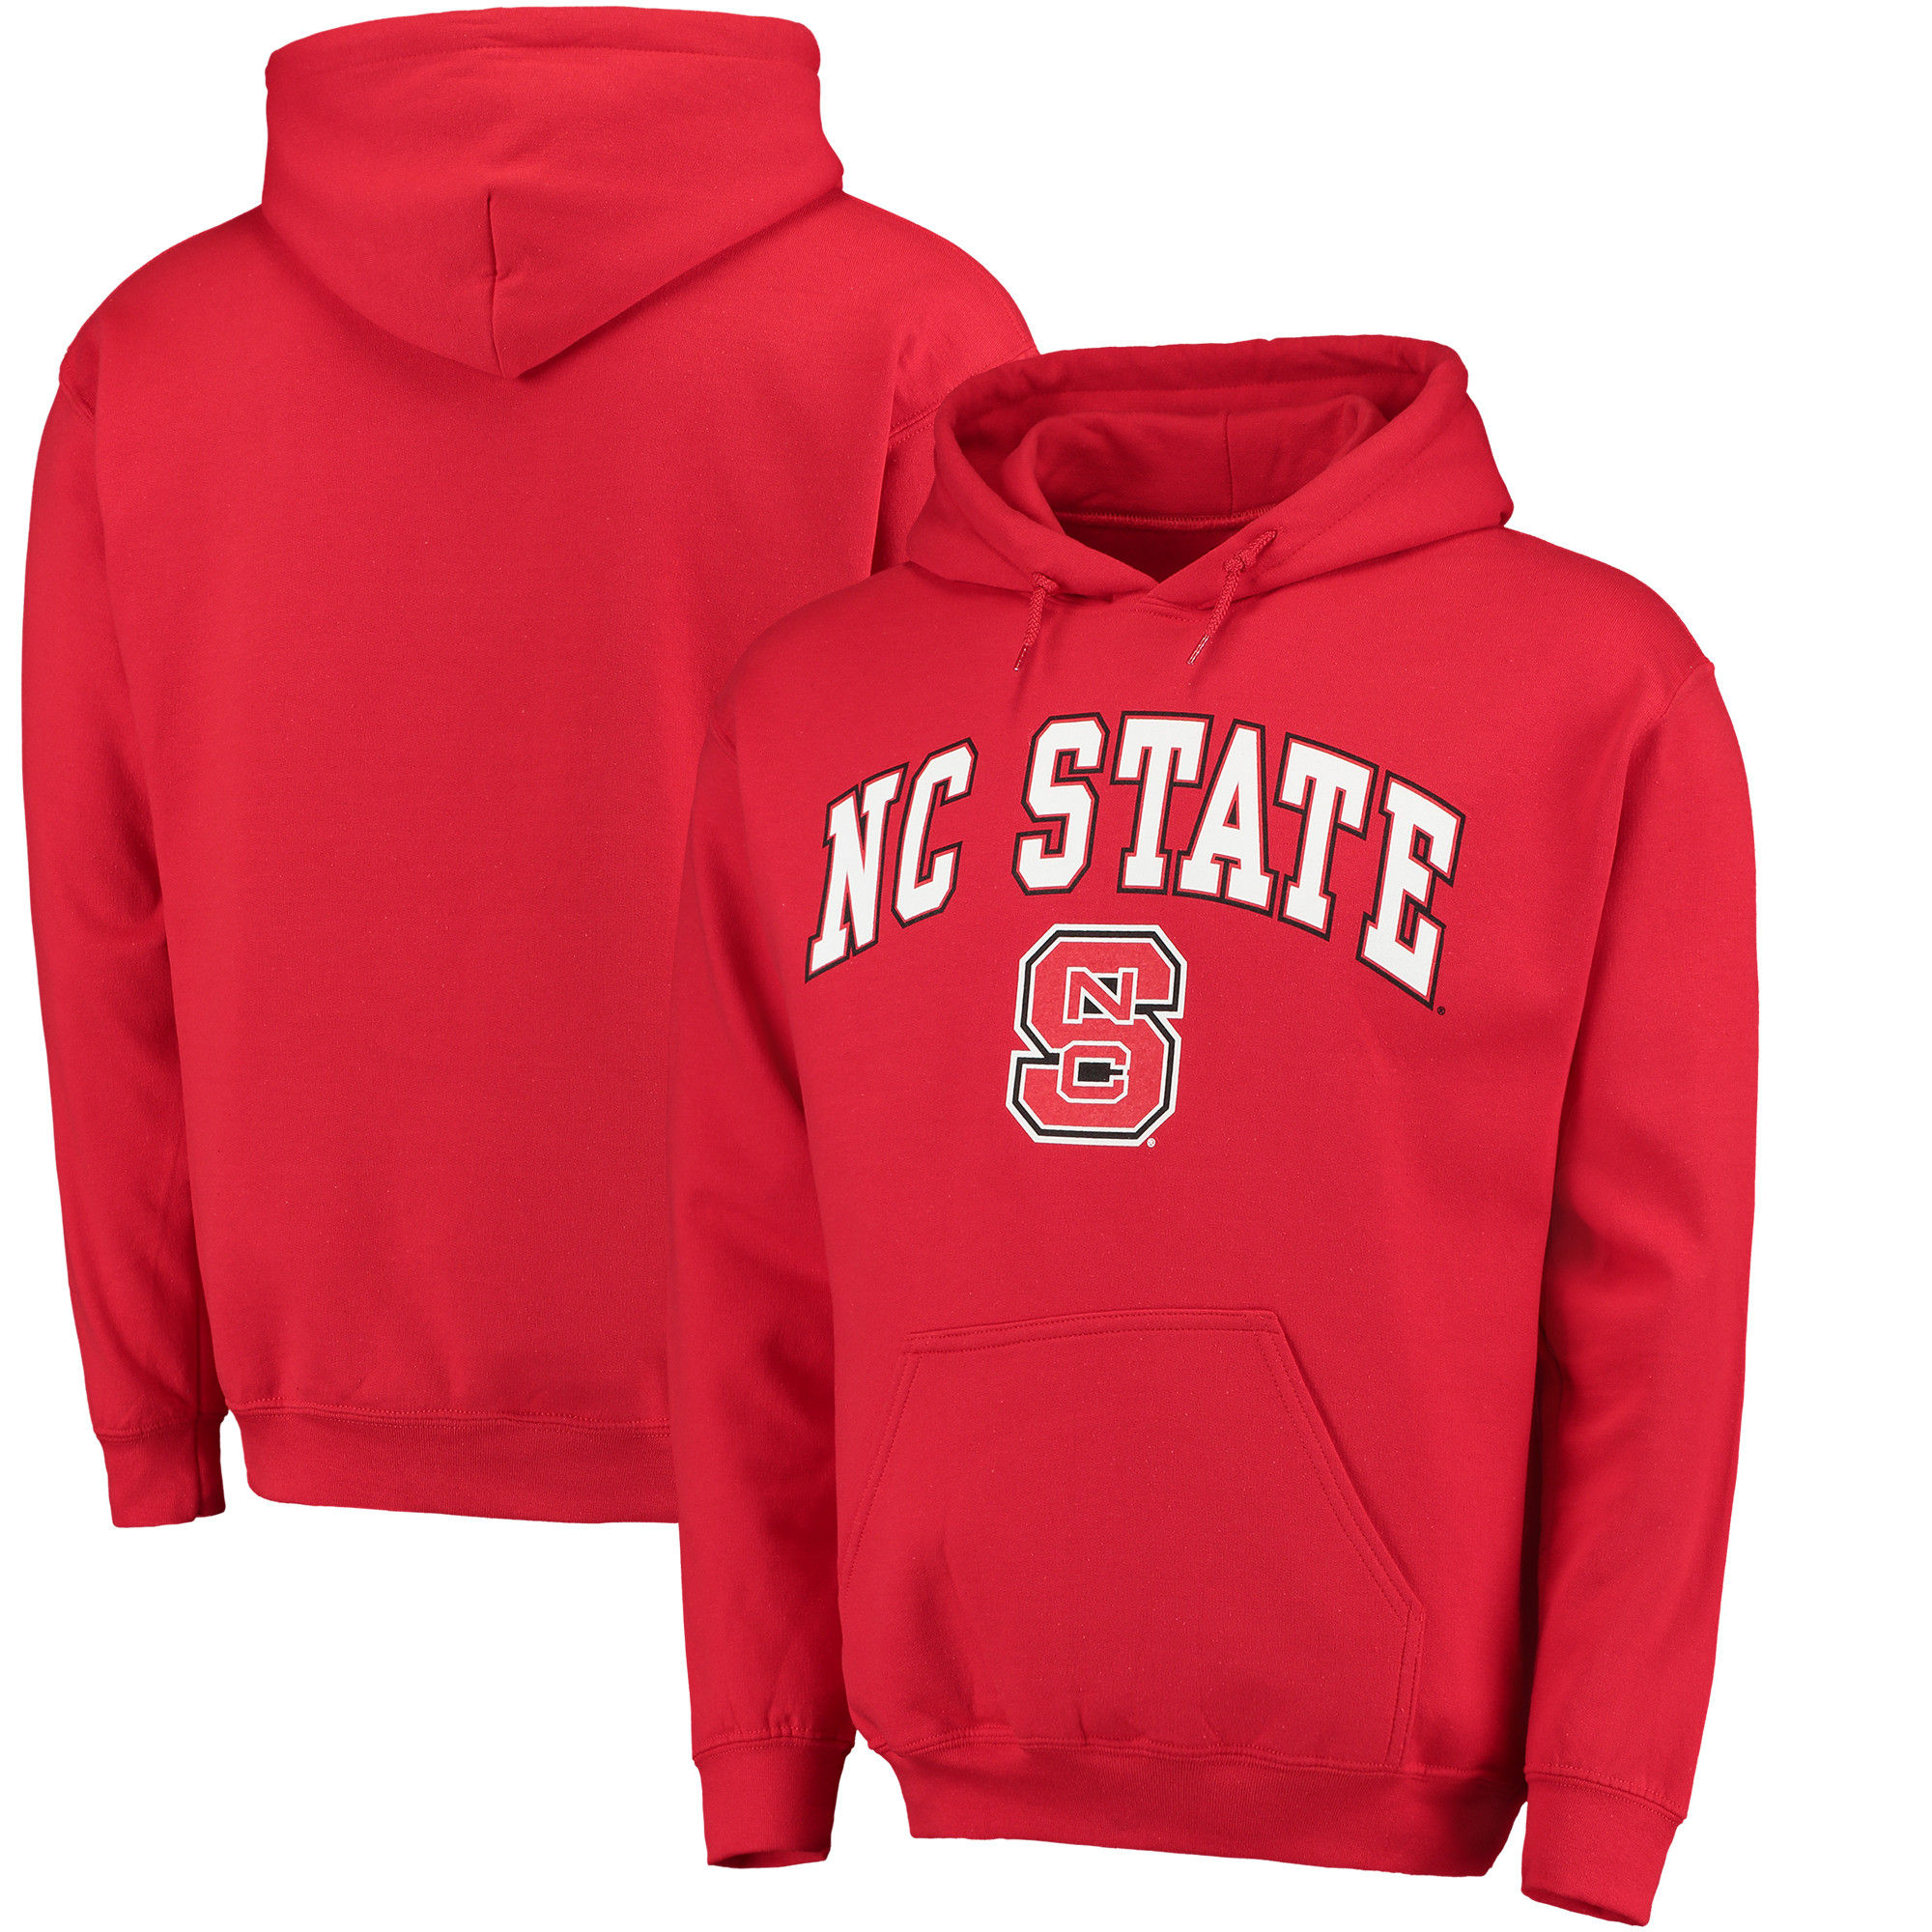 NC State Wolfpack Red Campus Pullover Hoodie